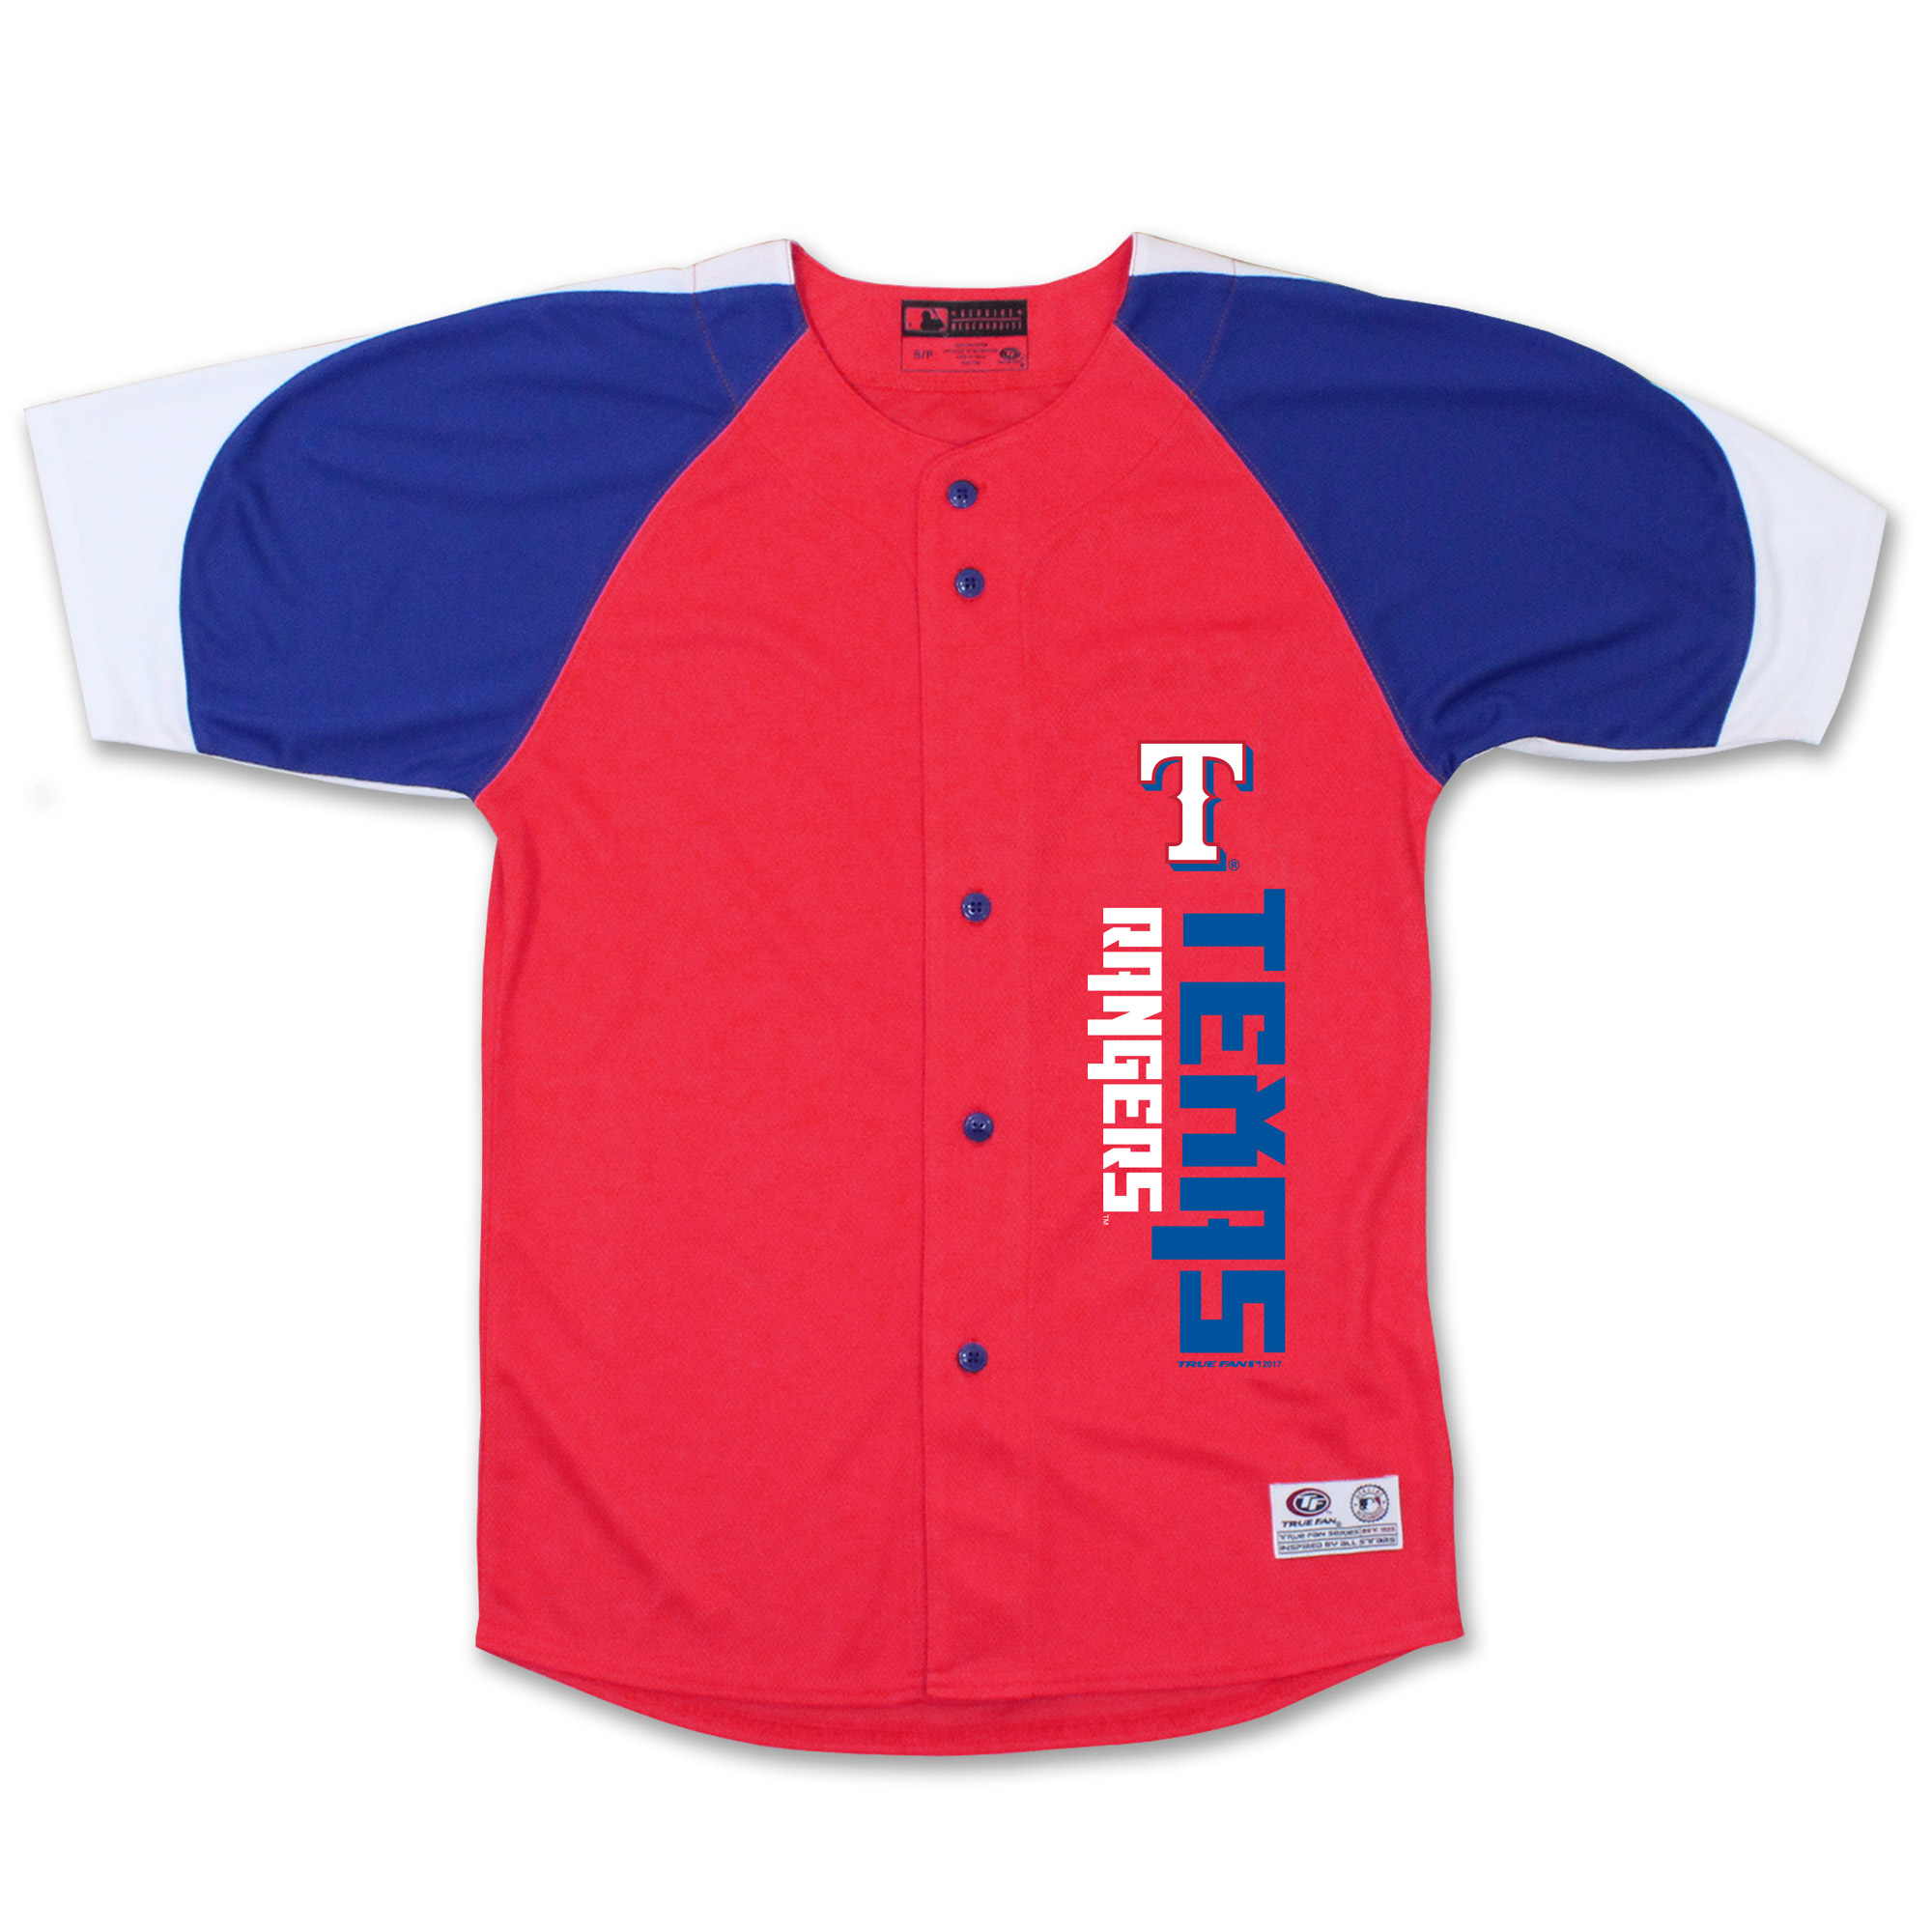 Texas Rangers Stitches Youth Vertical Jersey - Red/Royal